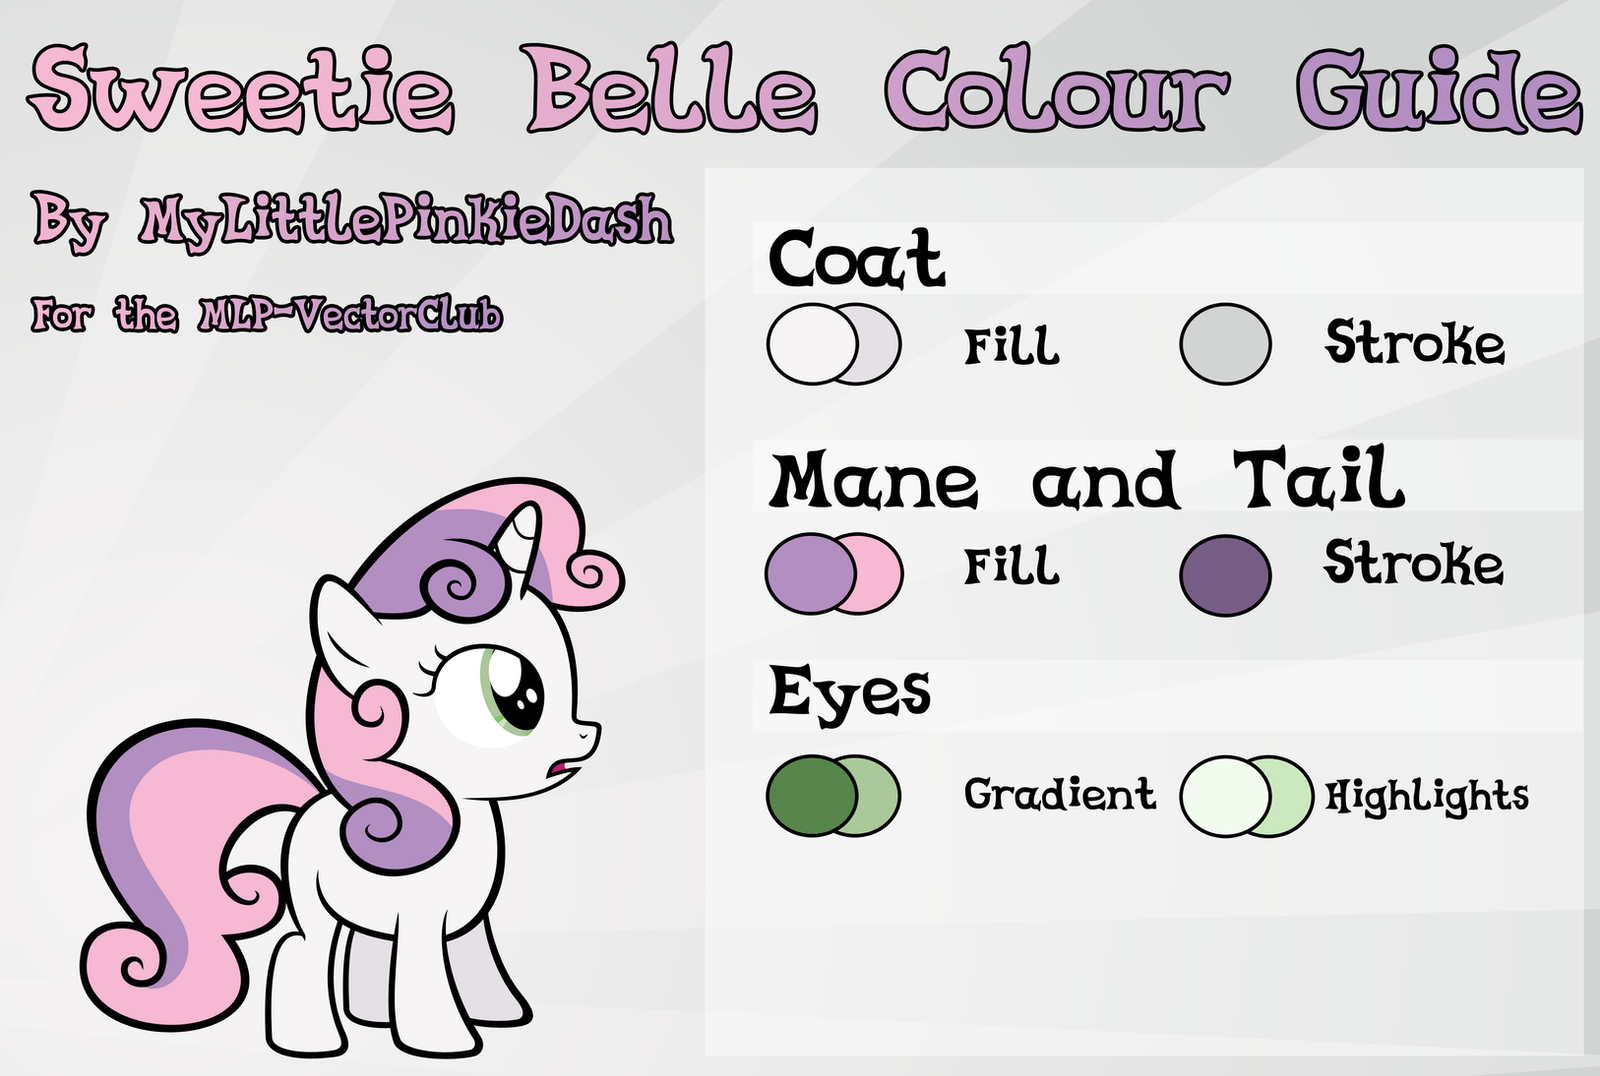 My little pony friendship is magic coloring pages sweetie belle - Sweetie Belle Colour Guide By Atmospark